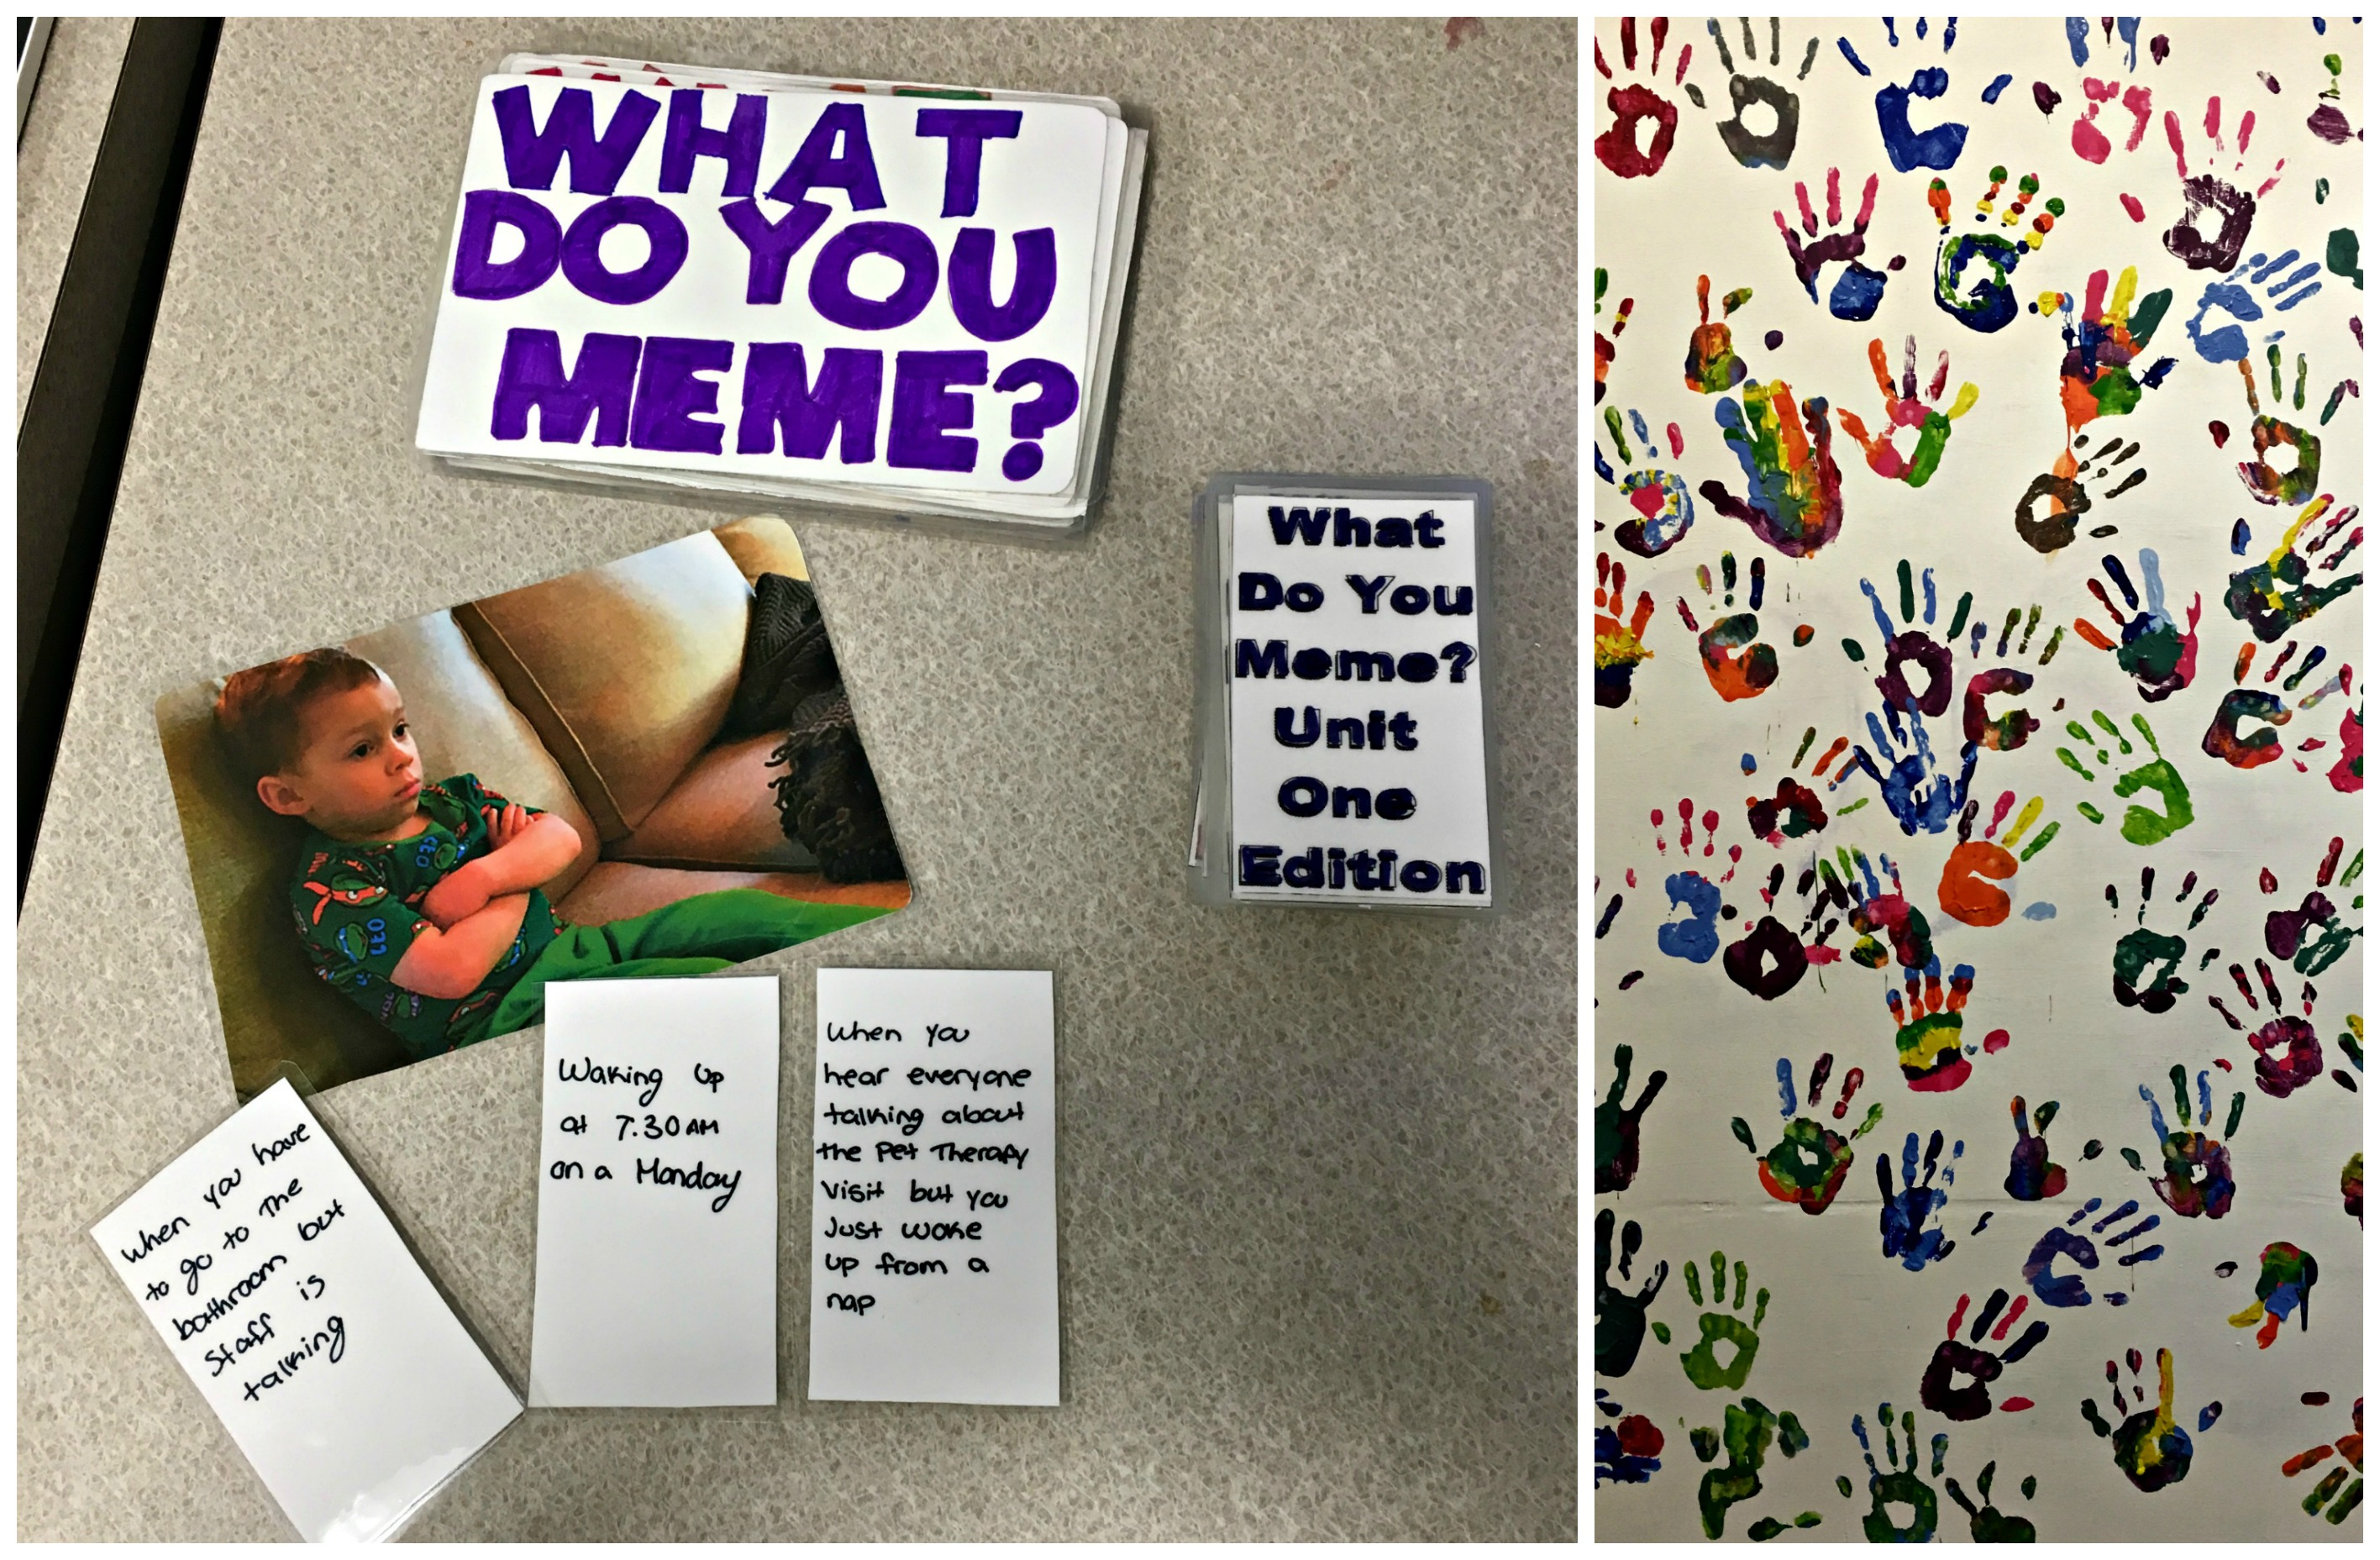 Unit 1 Meme and Art Collage